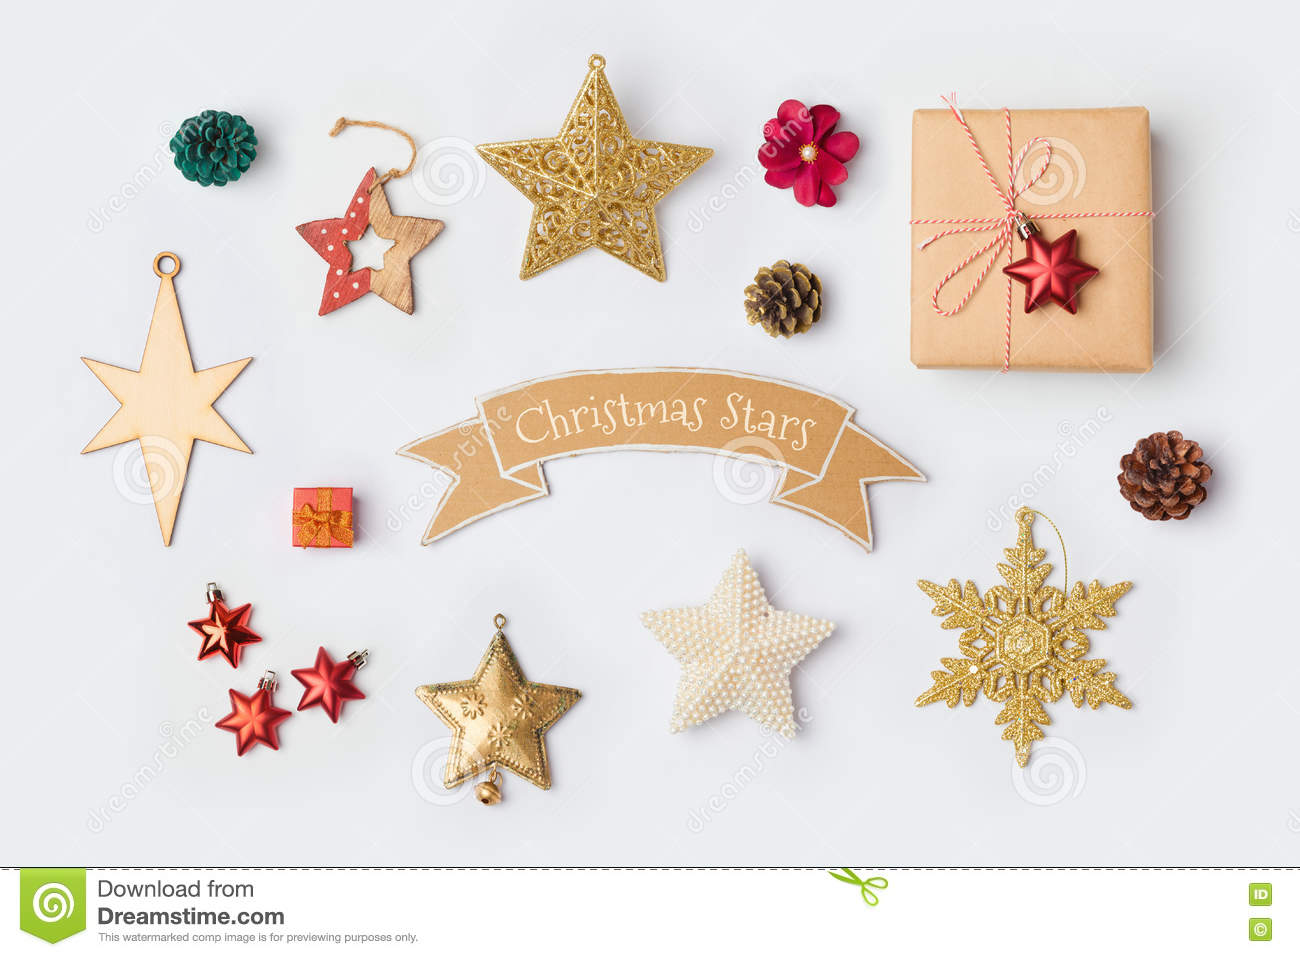 Christmas Star Decorations Collection For Mock Up Template Design